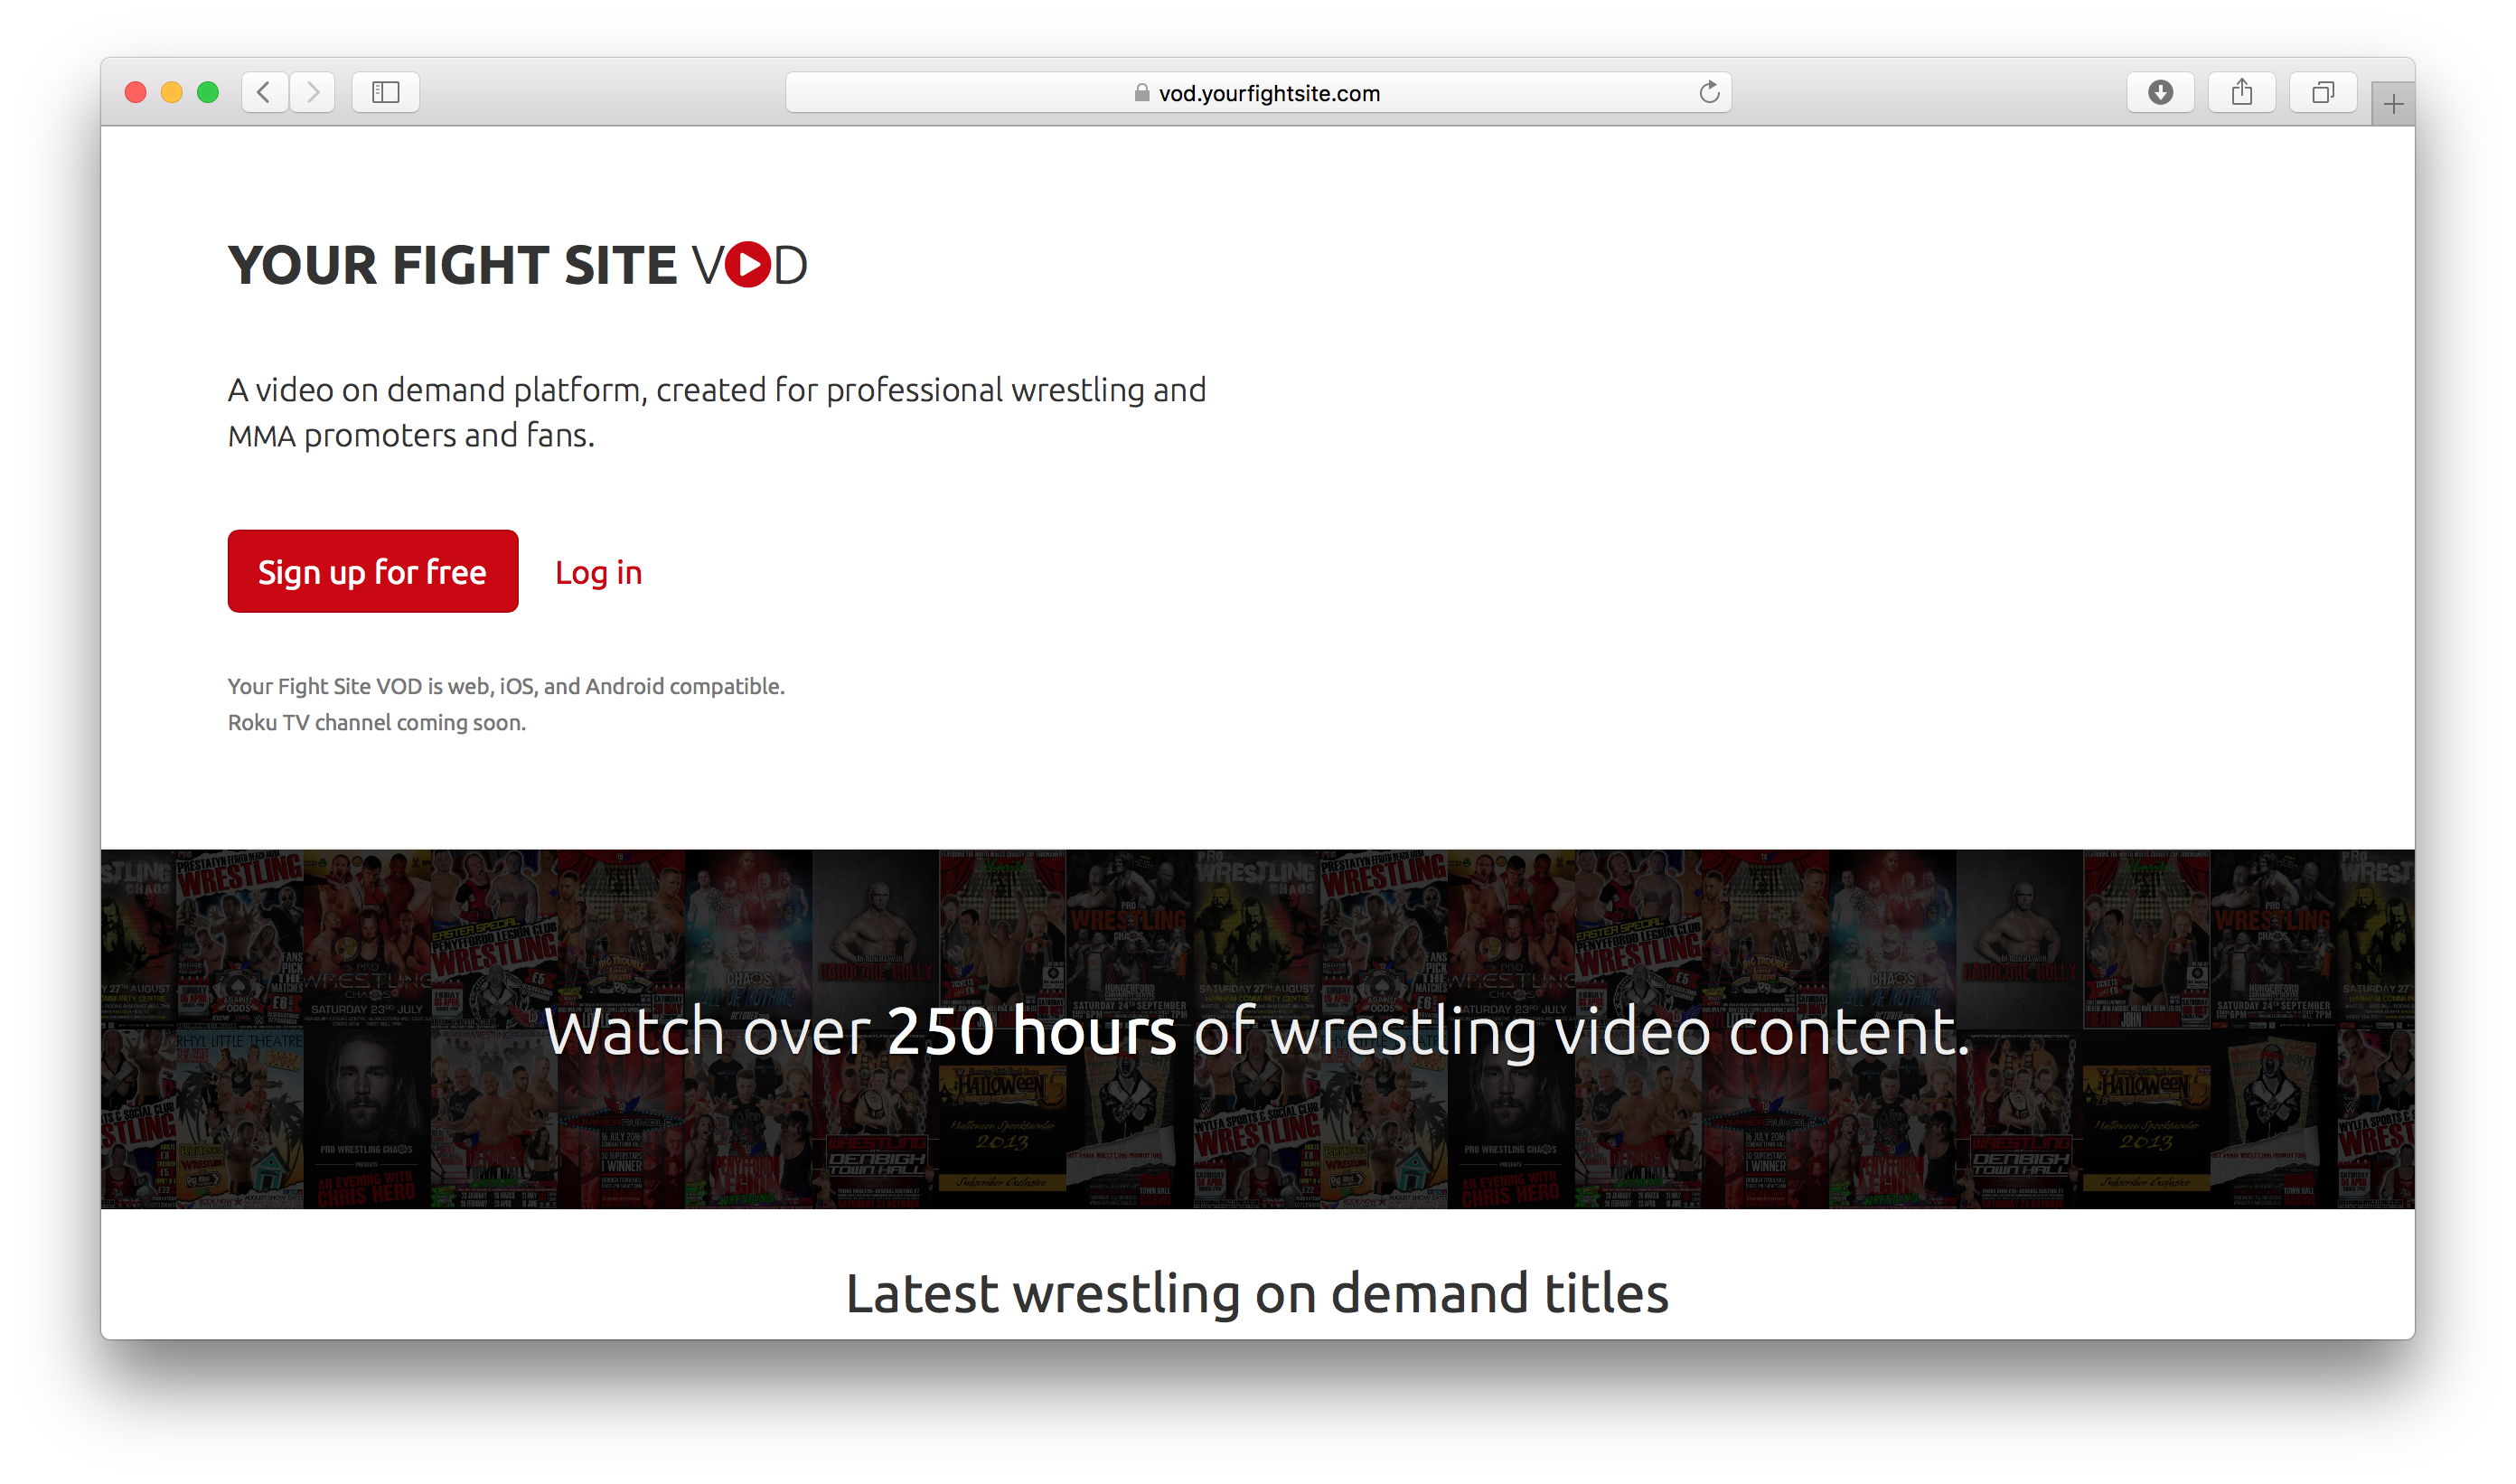 Your Fight Site VOD website screen-shot